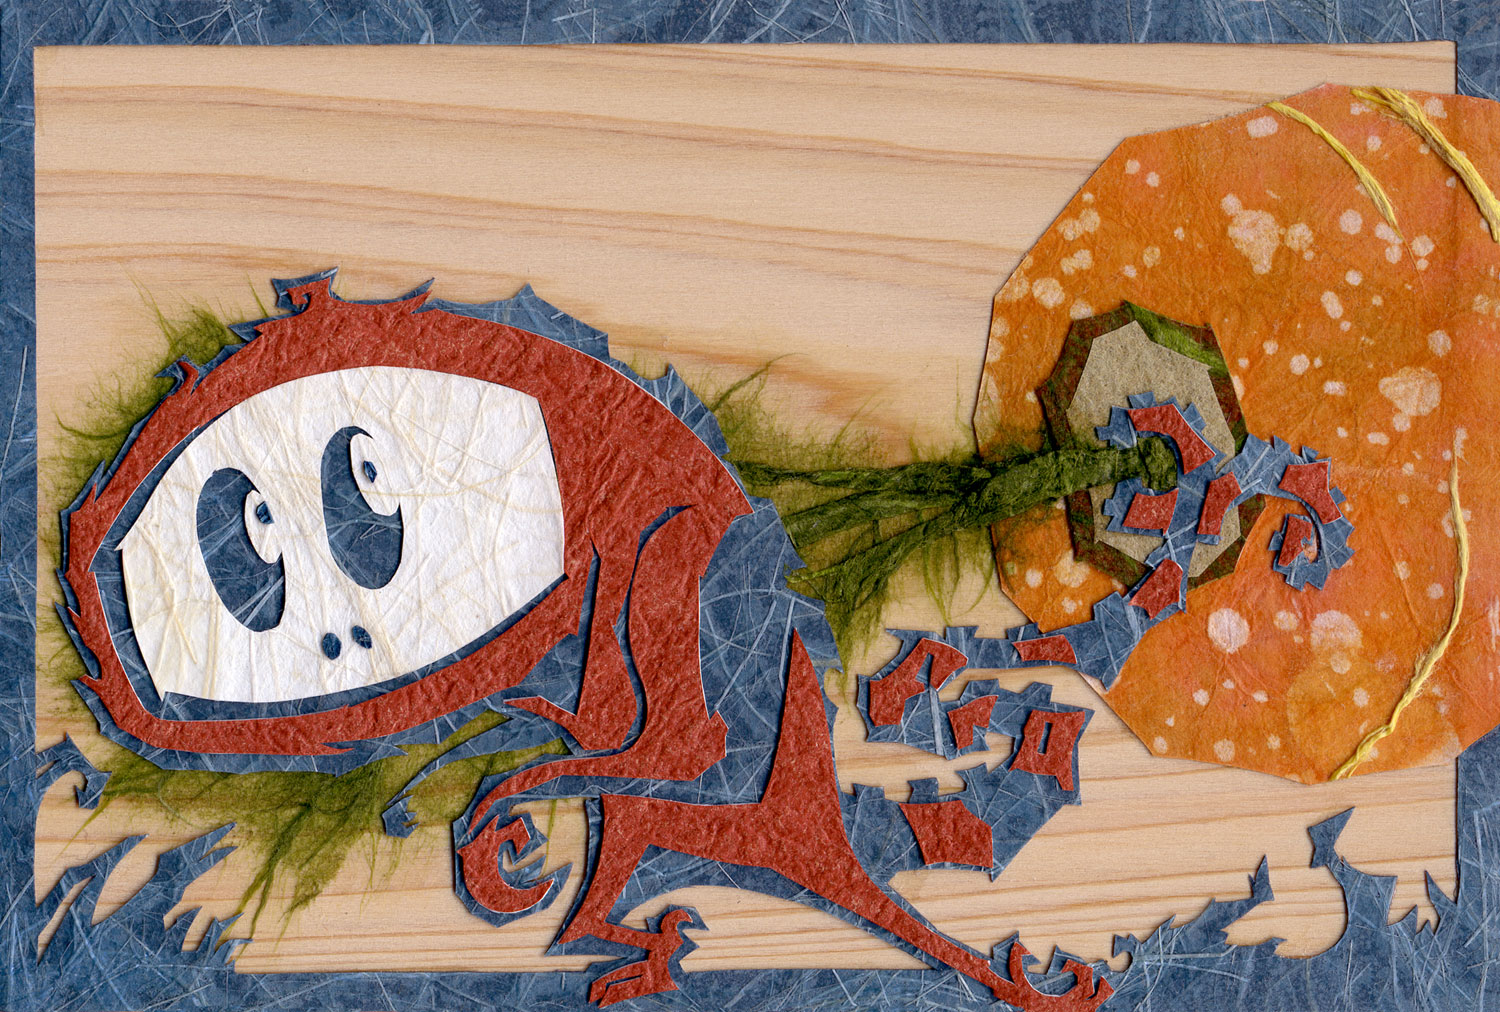 ⊛   The Carrot Thief    ⊛  cut + torn washi paper / wood   ⊛  4 x 6 in / 100 x 150 mm   private collection